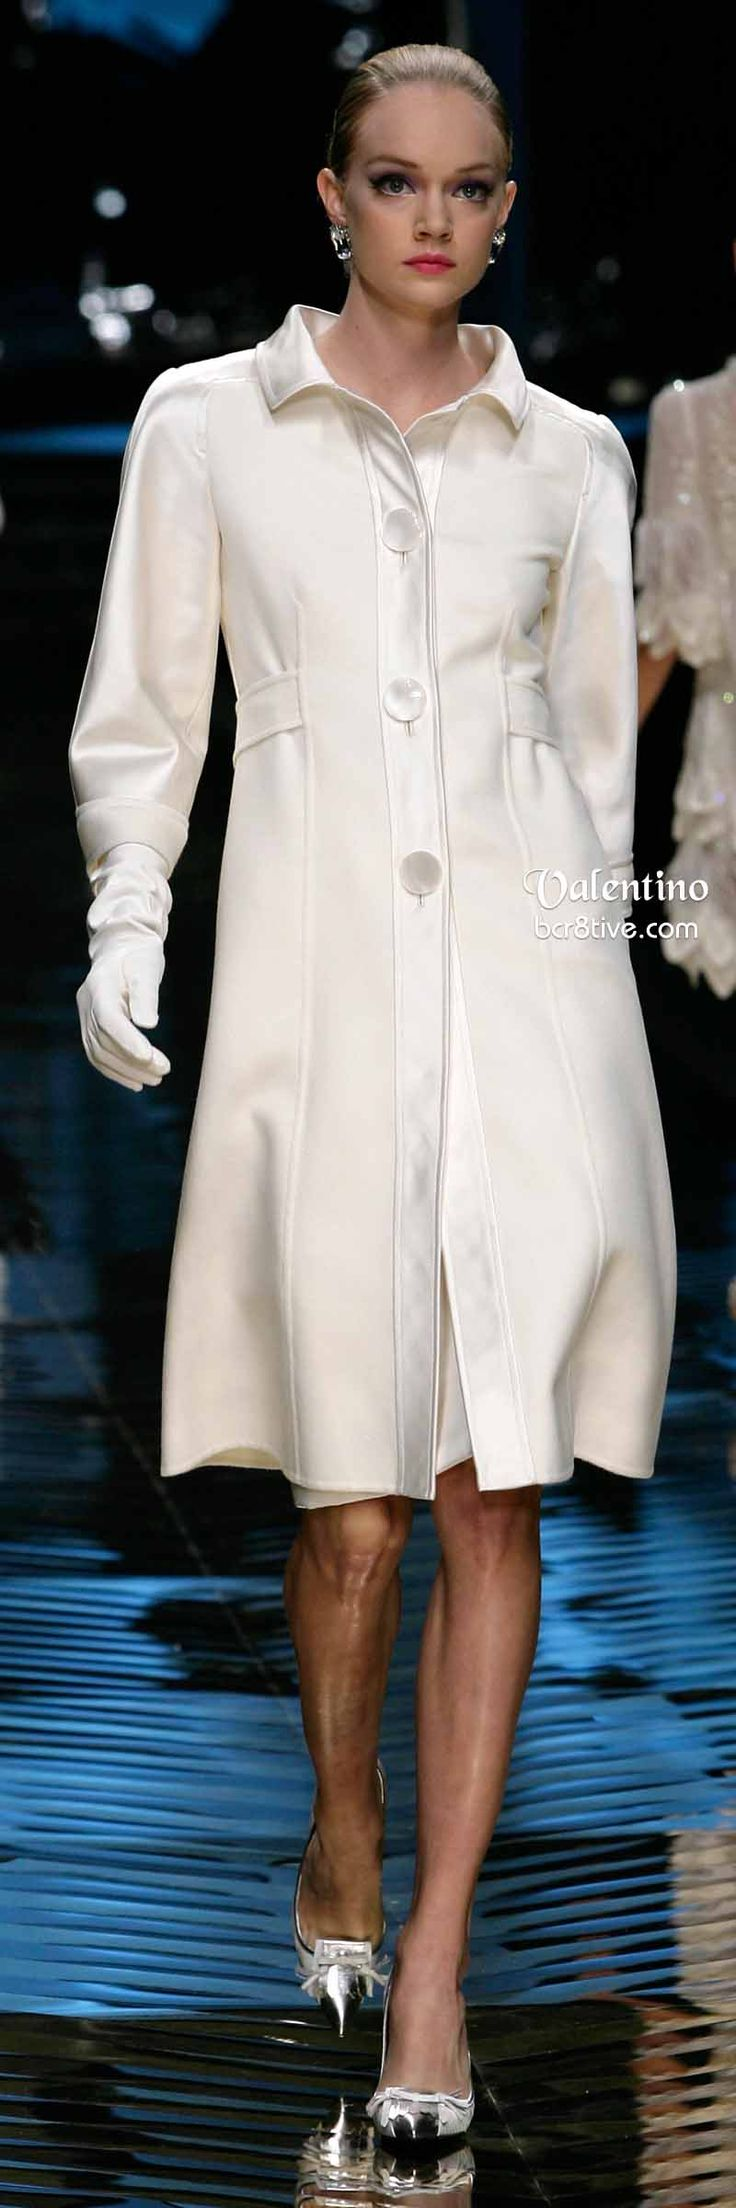 Valentino White Coat Dress